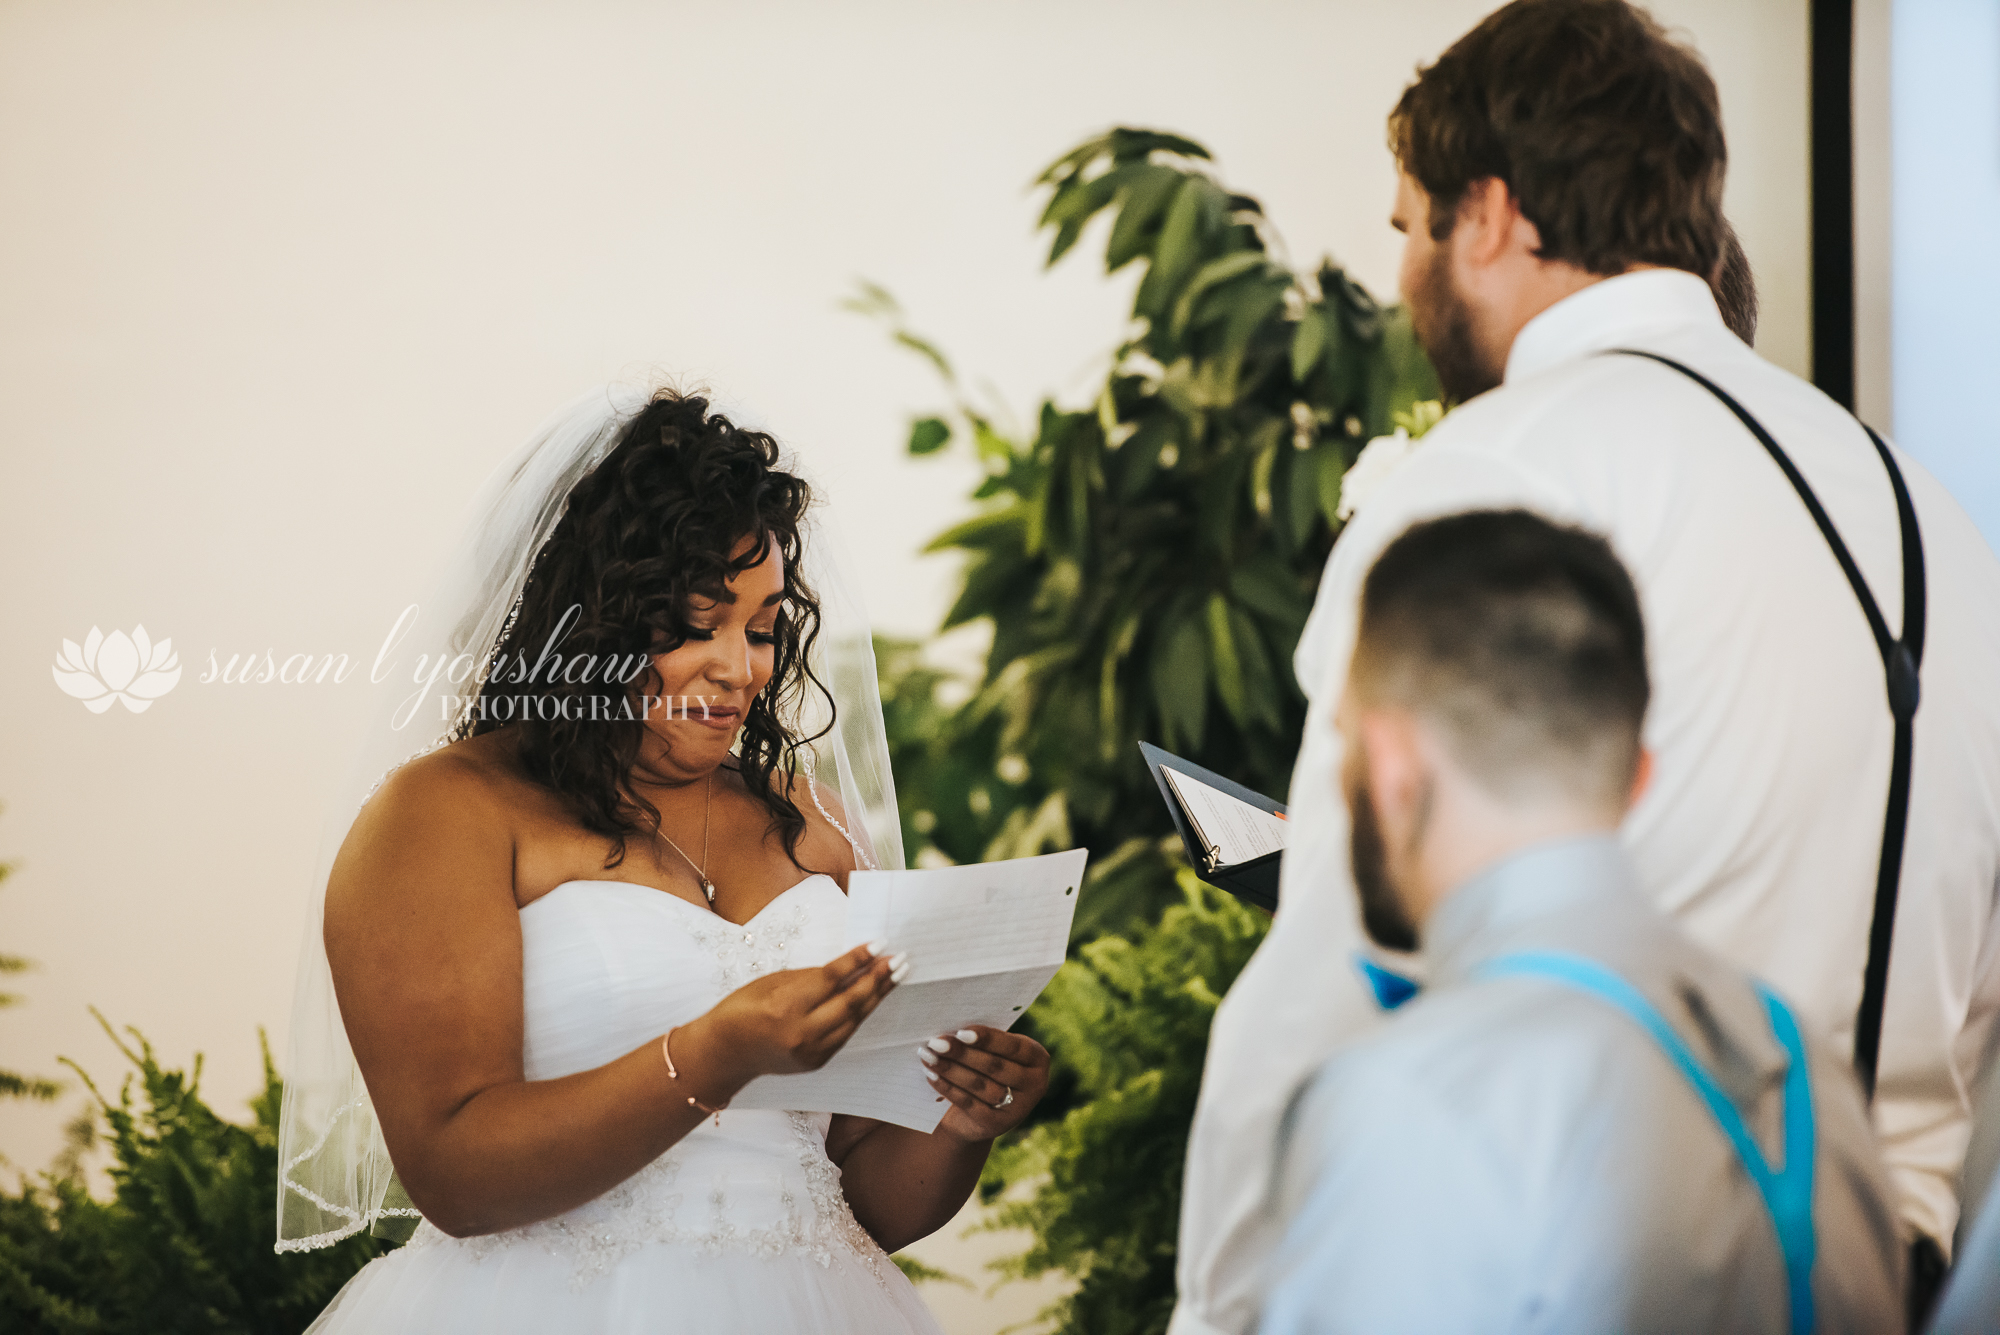 Katelyn and Wes Wedding Photos 07-13-2019 SLY Photography-71.jpg